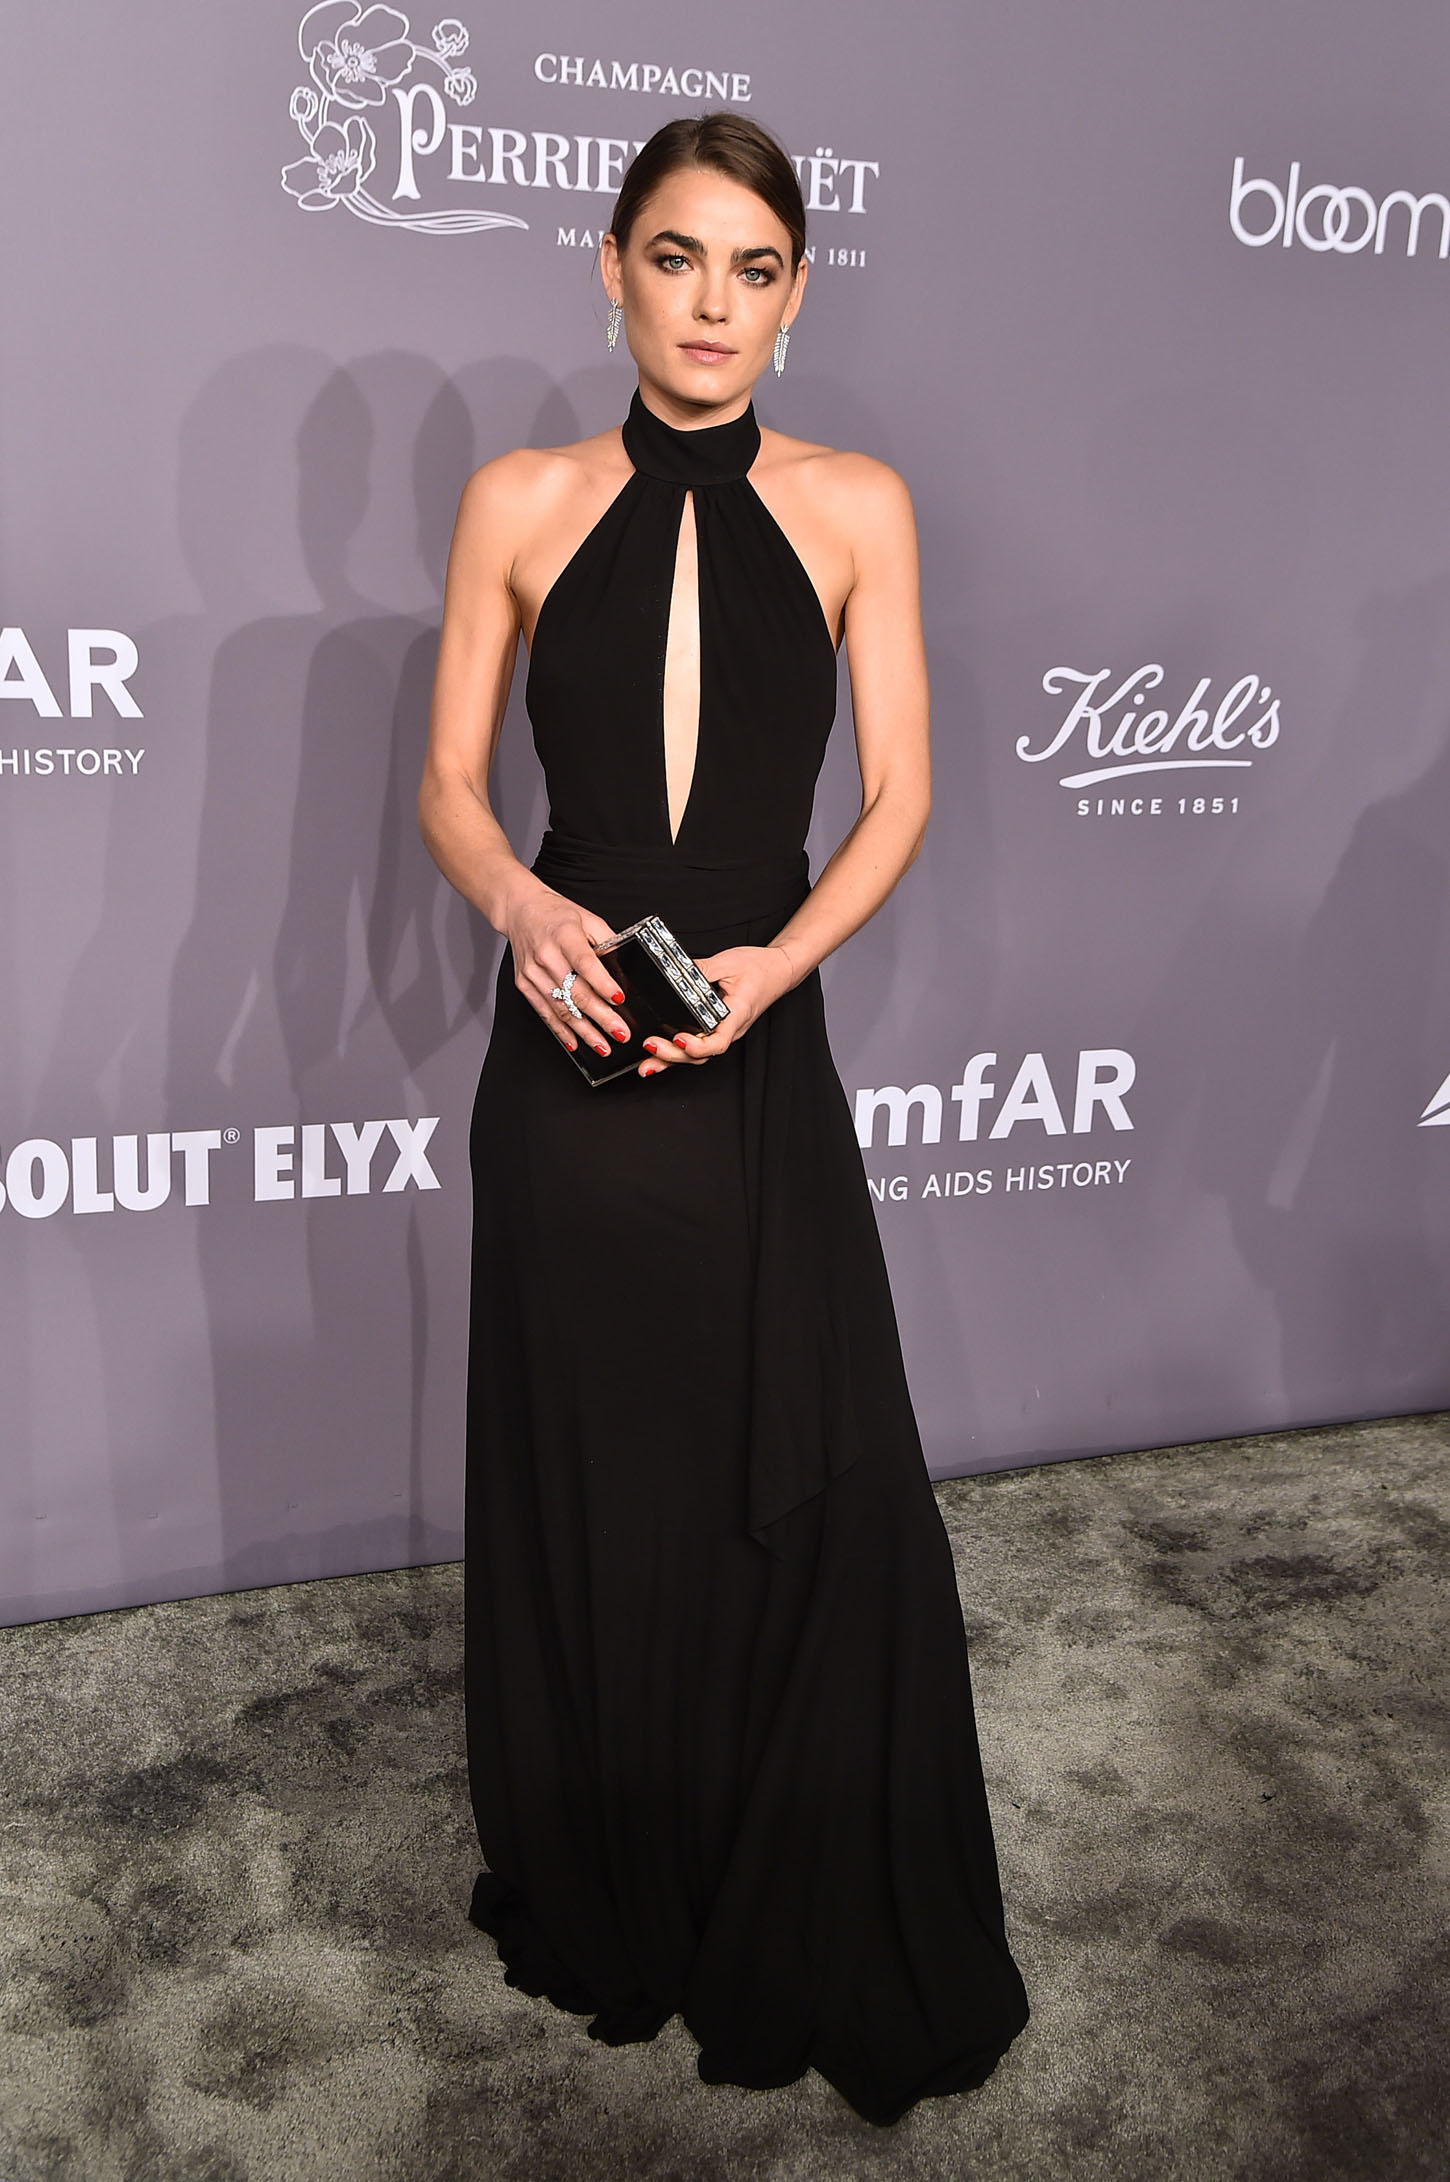 NEW YORK, NY - FEBRUARY 07:  Model Bambi Northwood-Blyth attends the 2018 amfAR Gala New York at Cipriani Wall Street on February 7, 2018 in New York City.  (Photo by Theo Wargo/Getty Images)